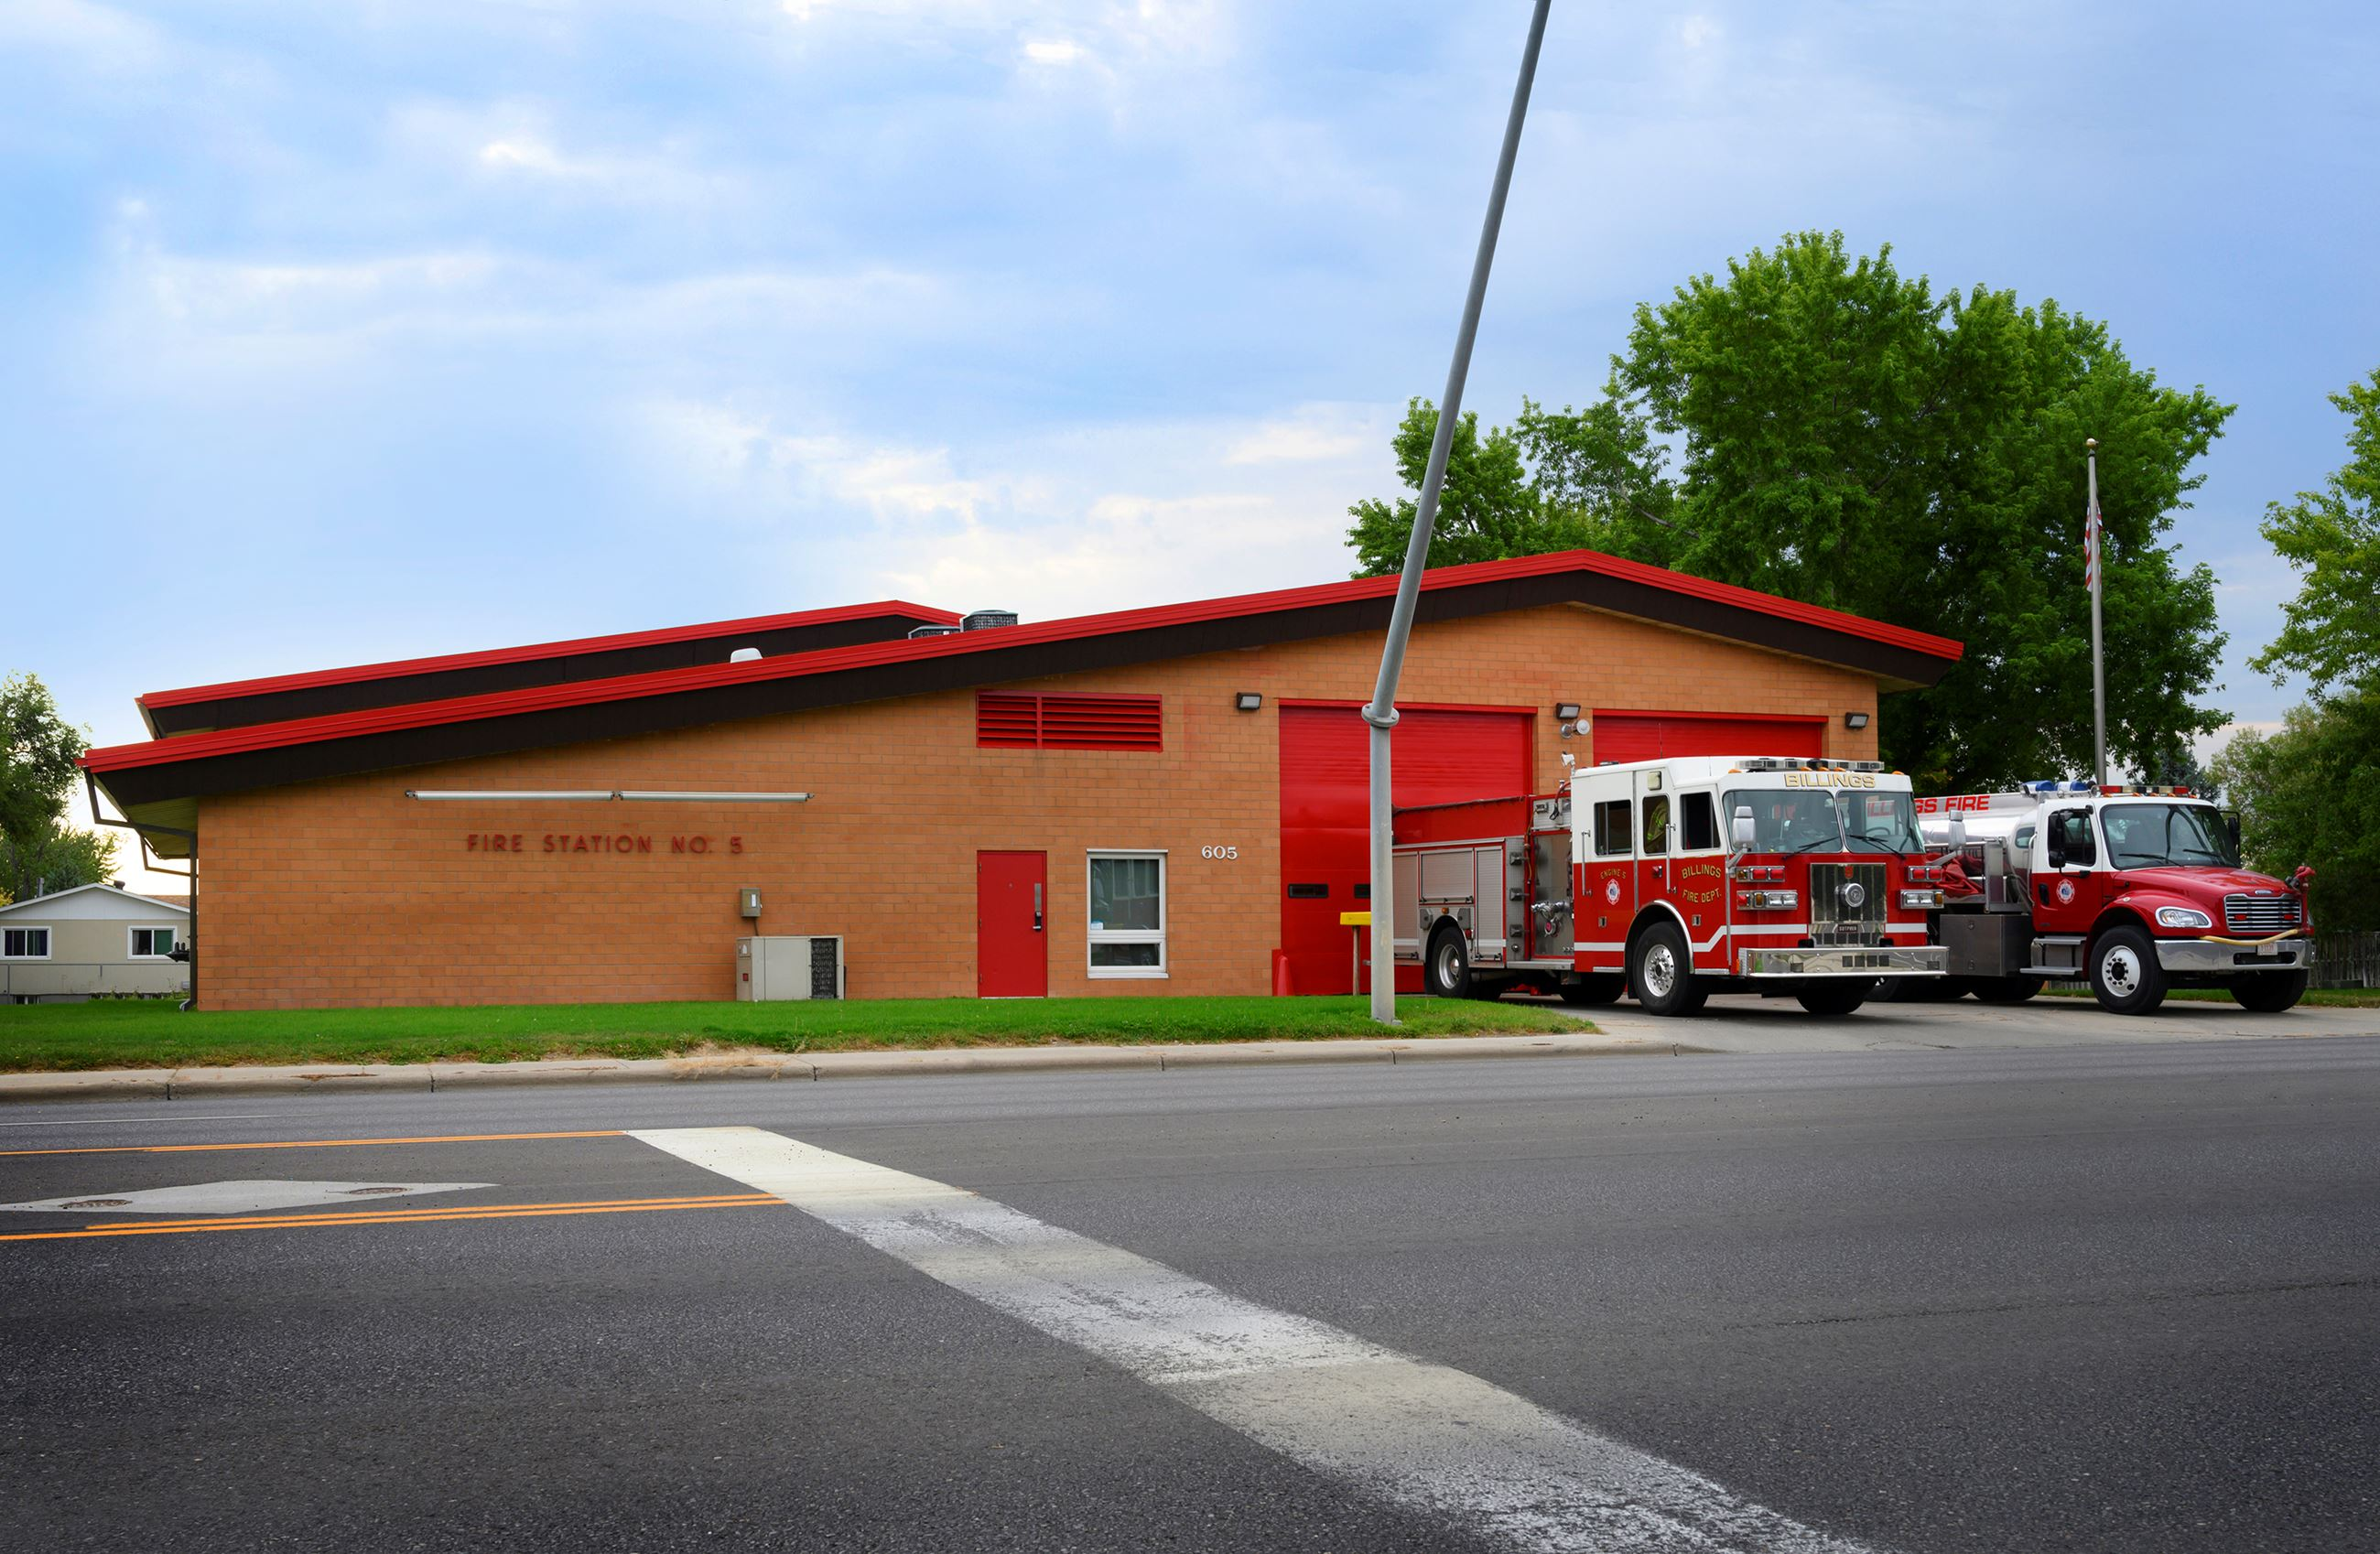 Billings Fire Department Station 5 with pumper and tender on the ramp